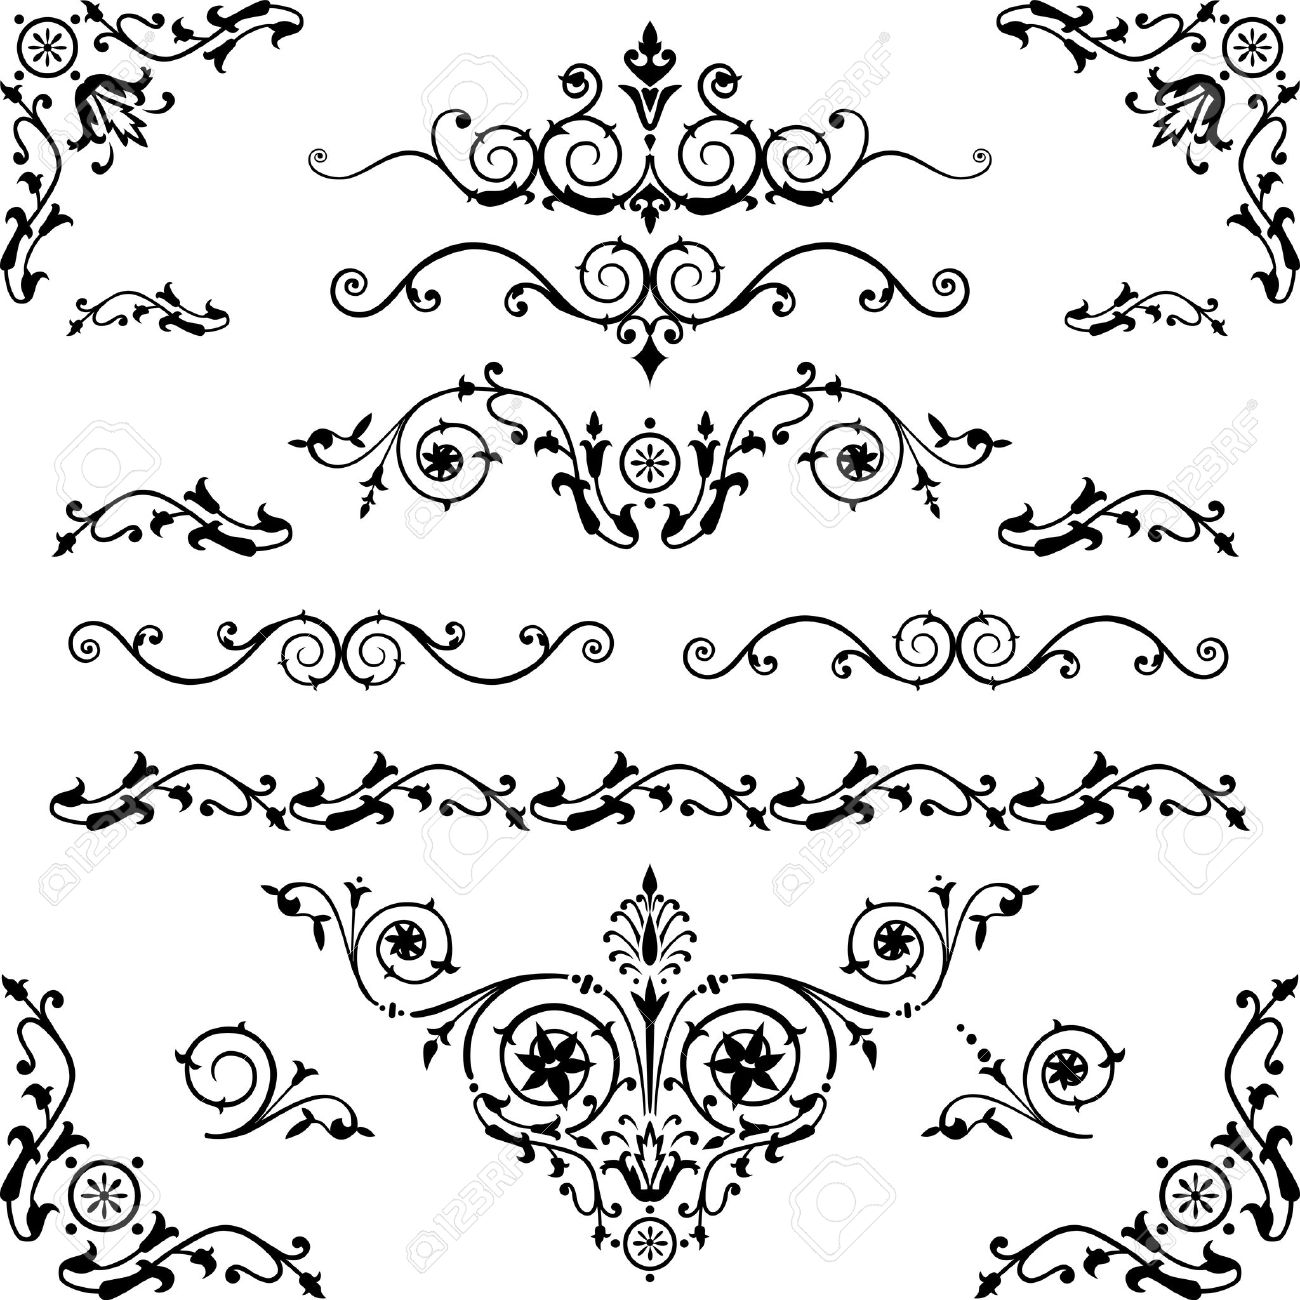 Vintage Design Elements Royalty Free Cliparts, Vectors, And Stock ...